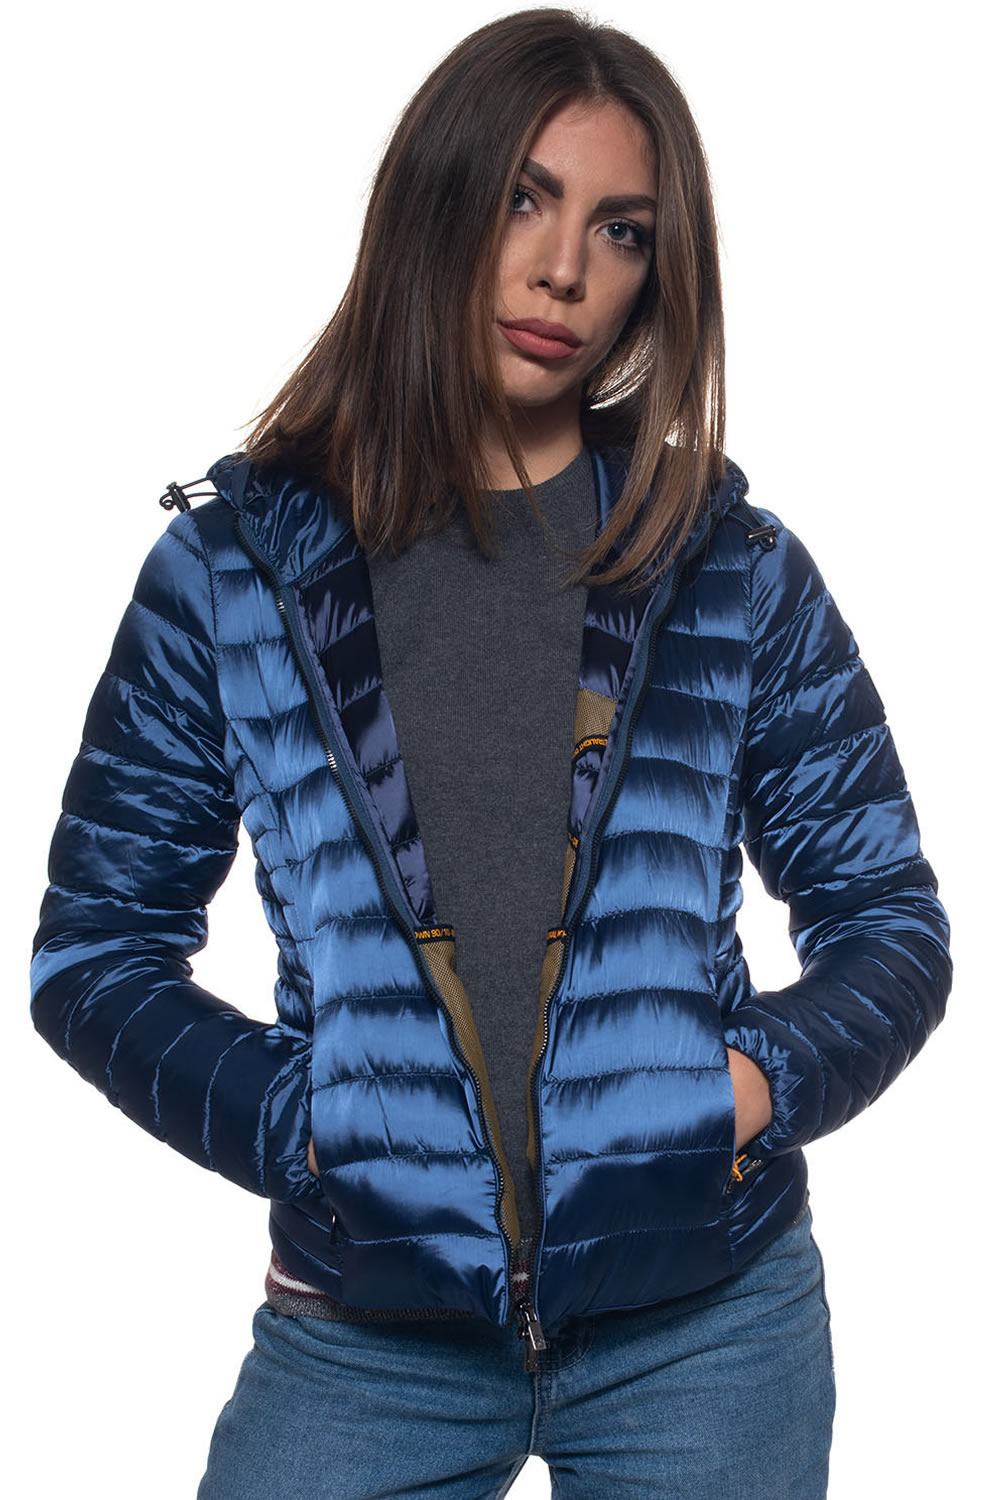 wholesale dealer 945e0 a728a Aghata quilted jacket 100gr